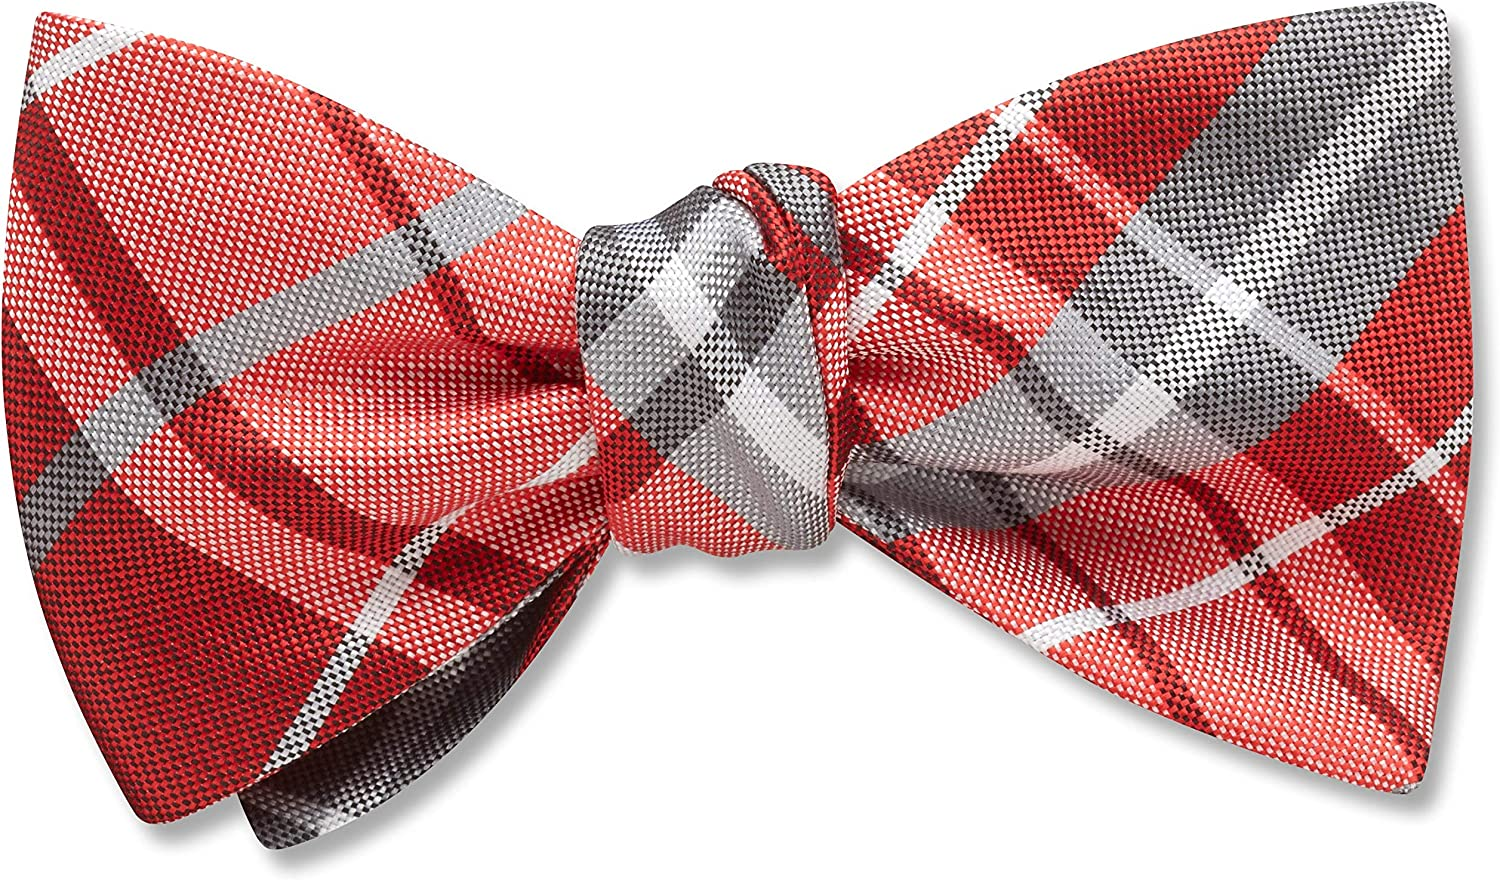 Mansfield Persimmon Red Plaid, Men's Bow Tie, Handmade in the USA